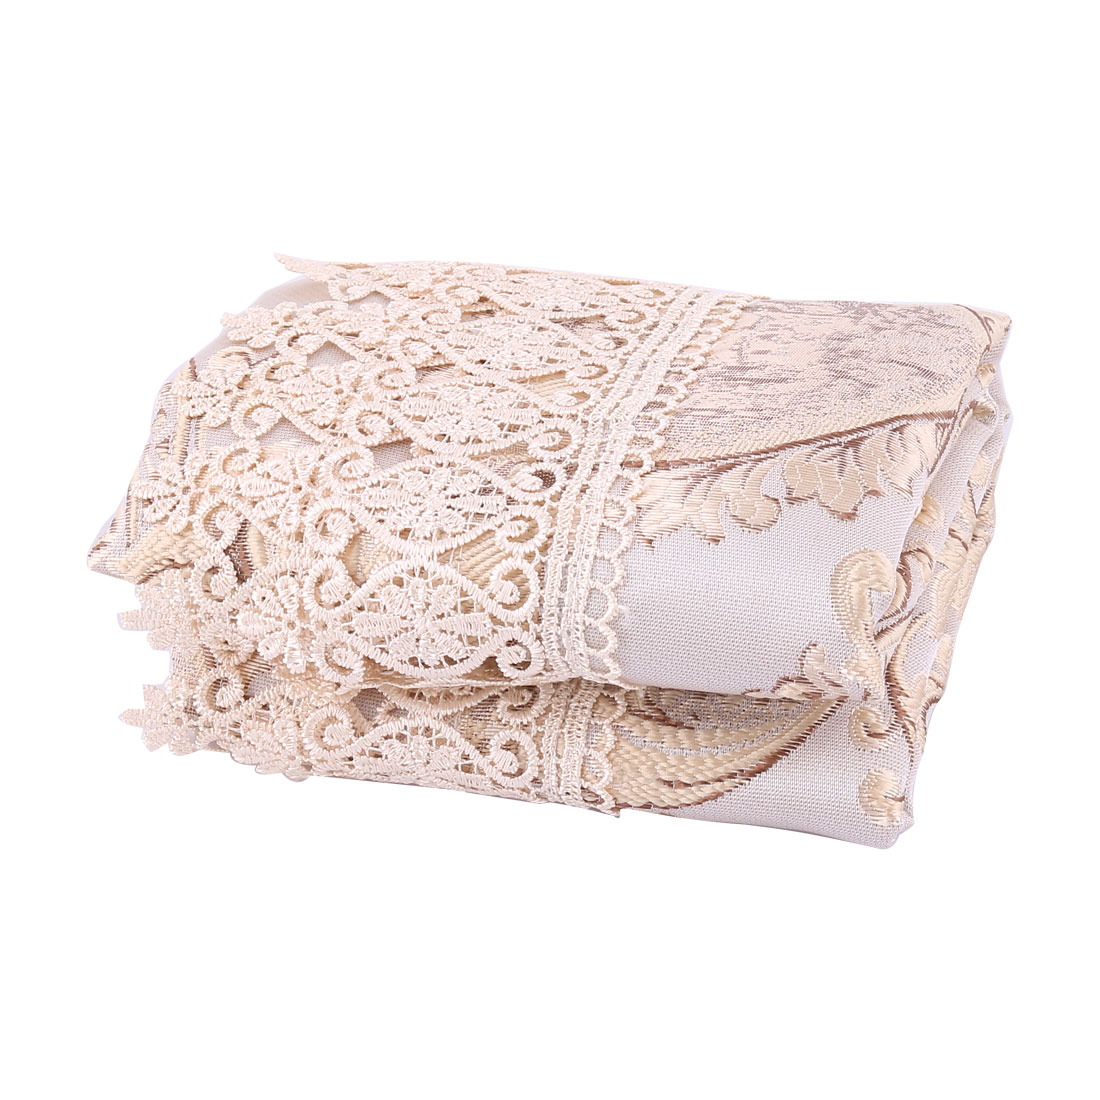 Embroidered Lacy Crochet Round 32 Inch Tablecloth Water/Oil Stain Resistant